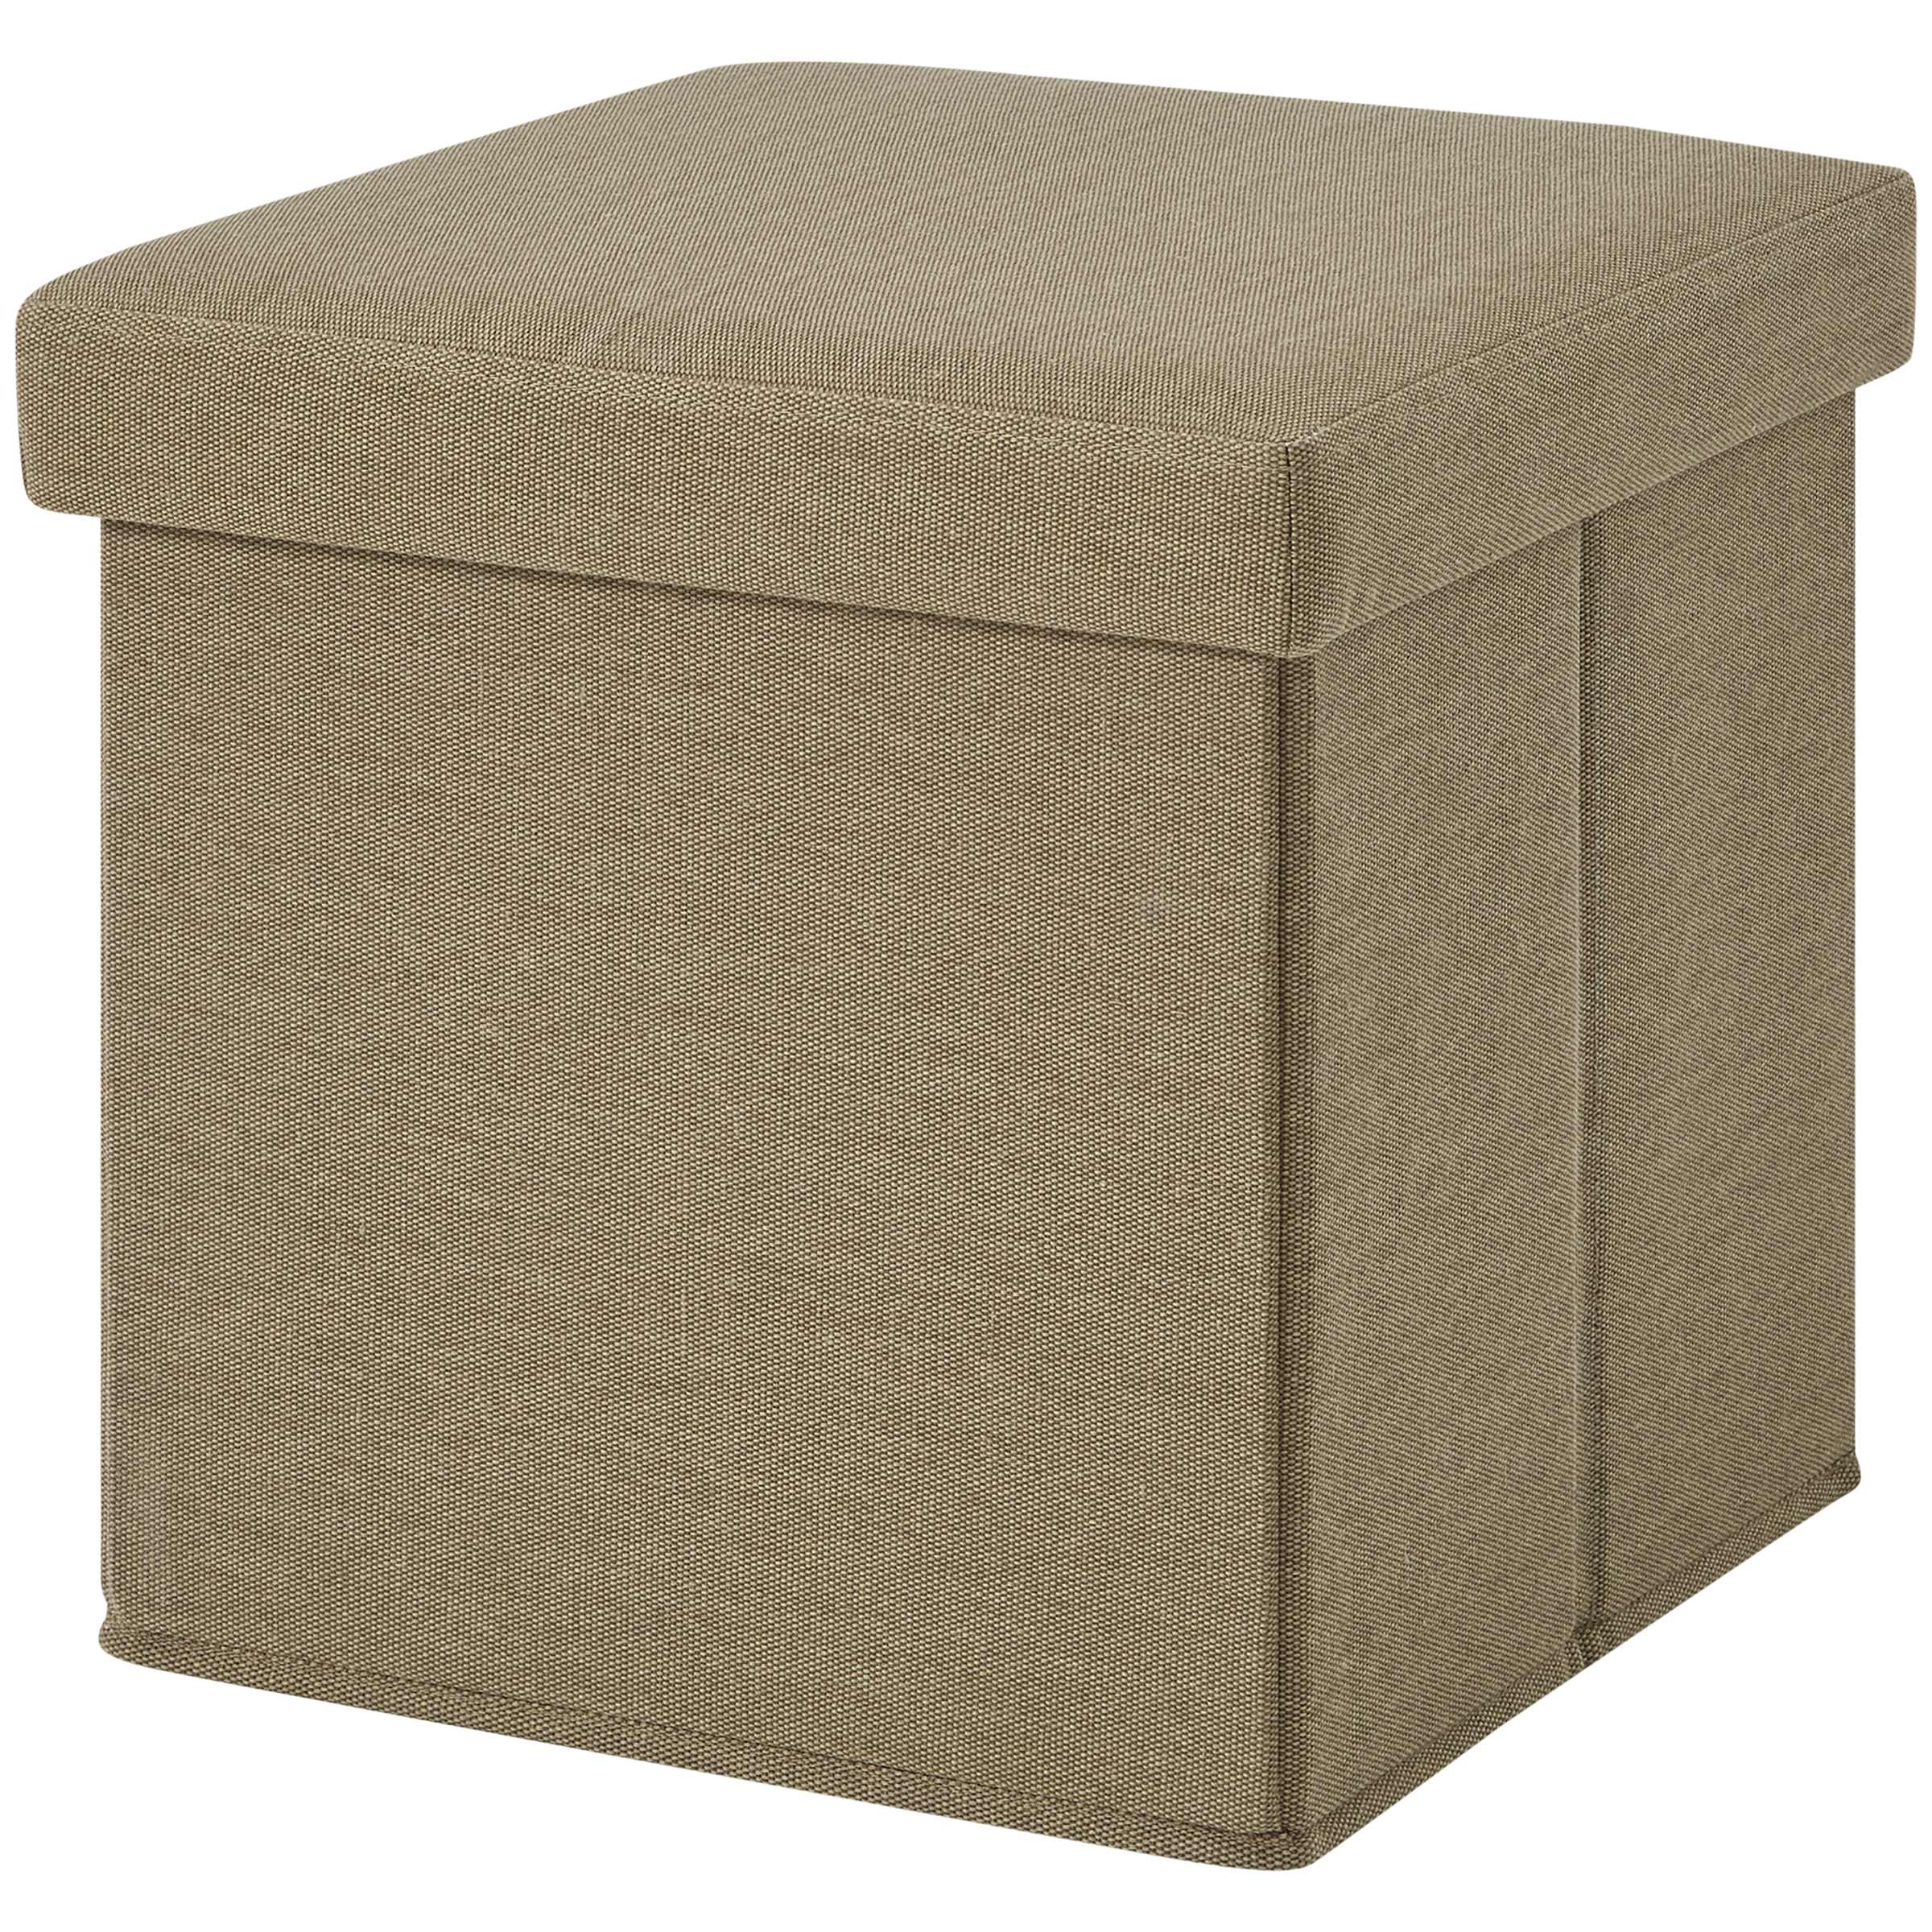 Mainstays Ultra Storage Ottoman, Tan Faux Suede